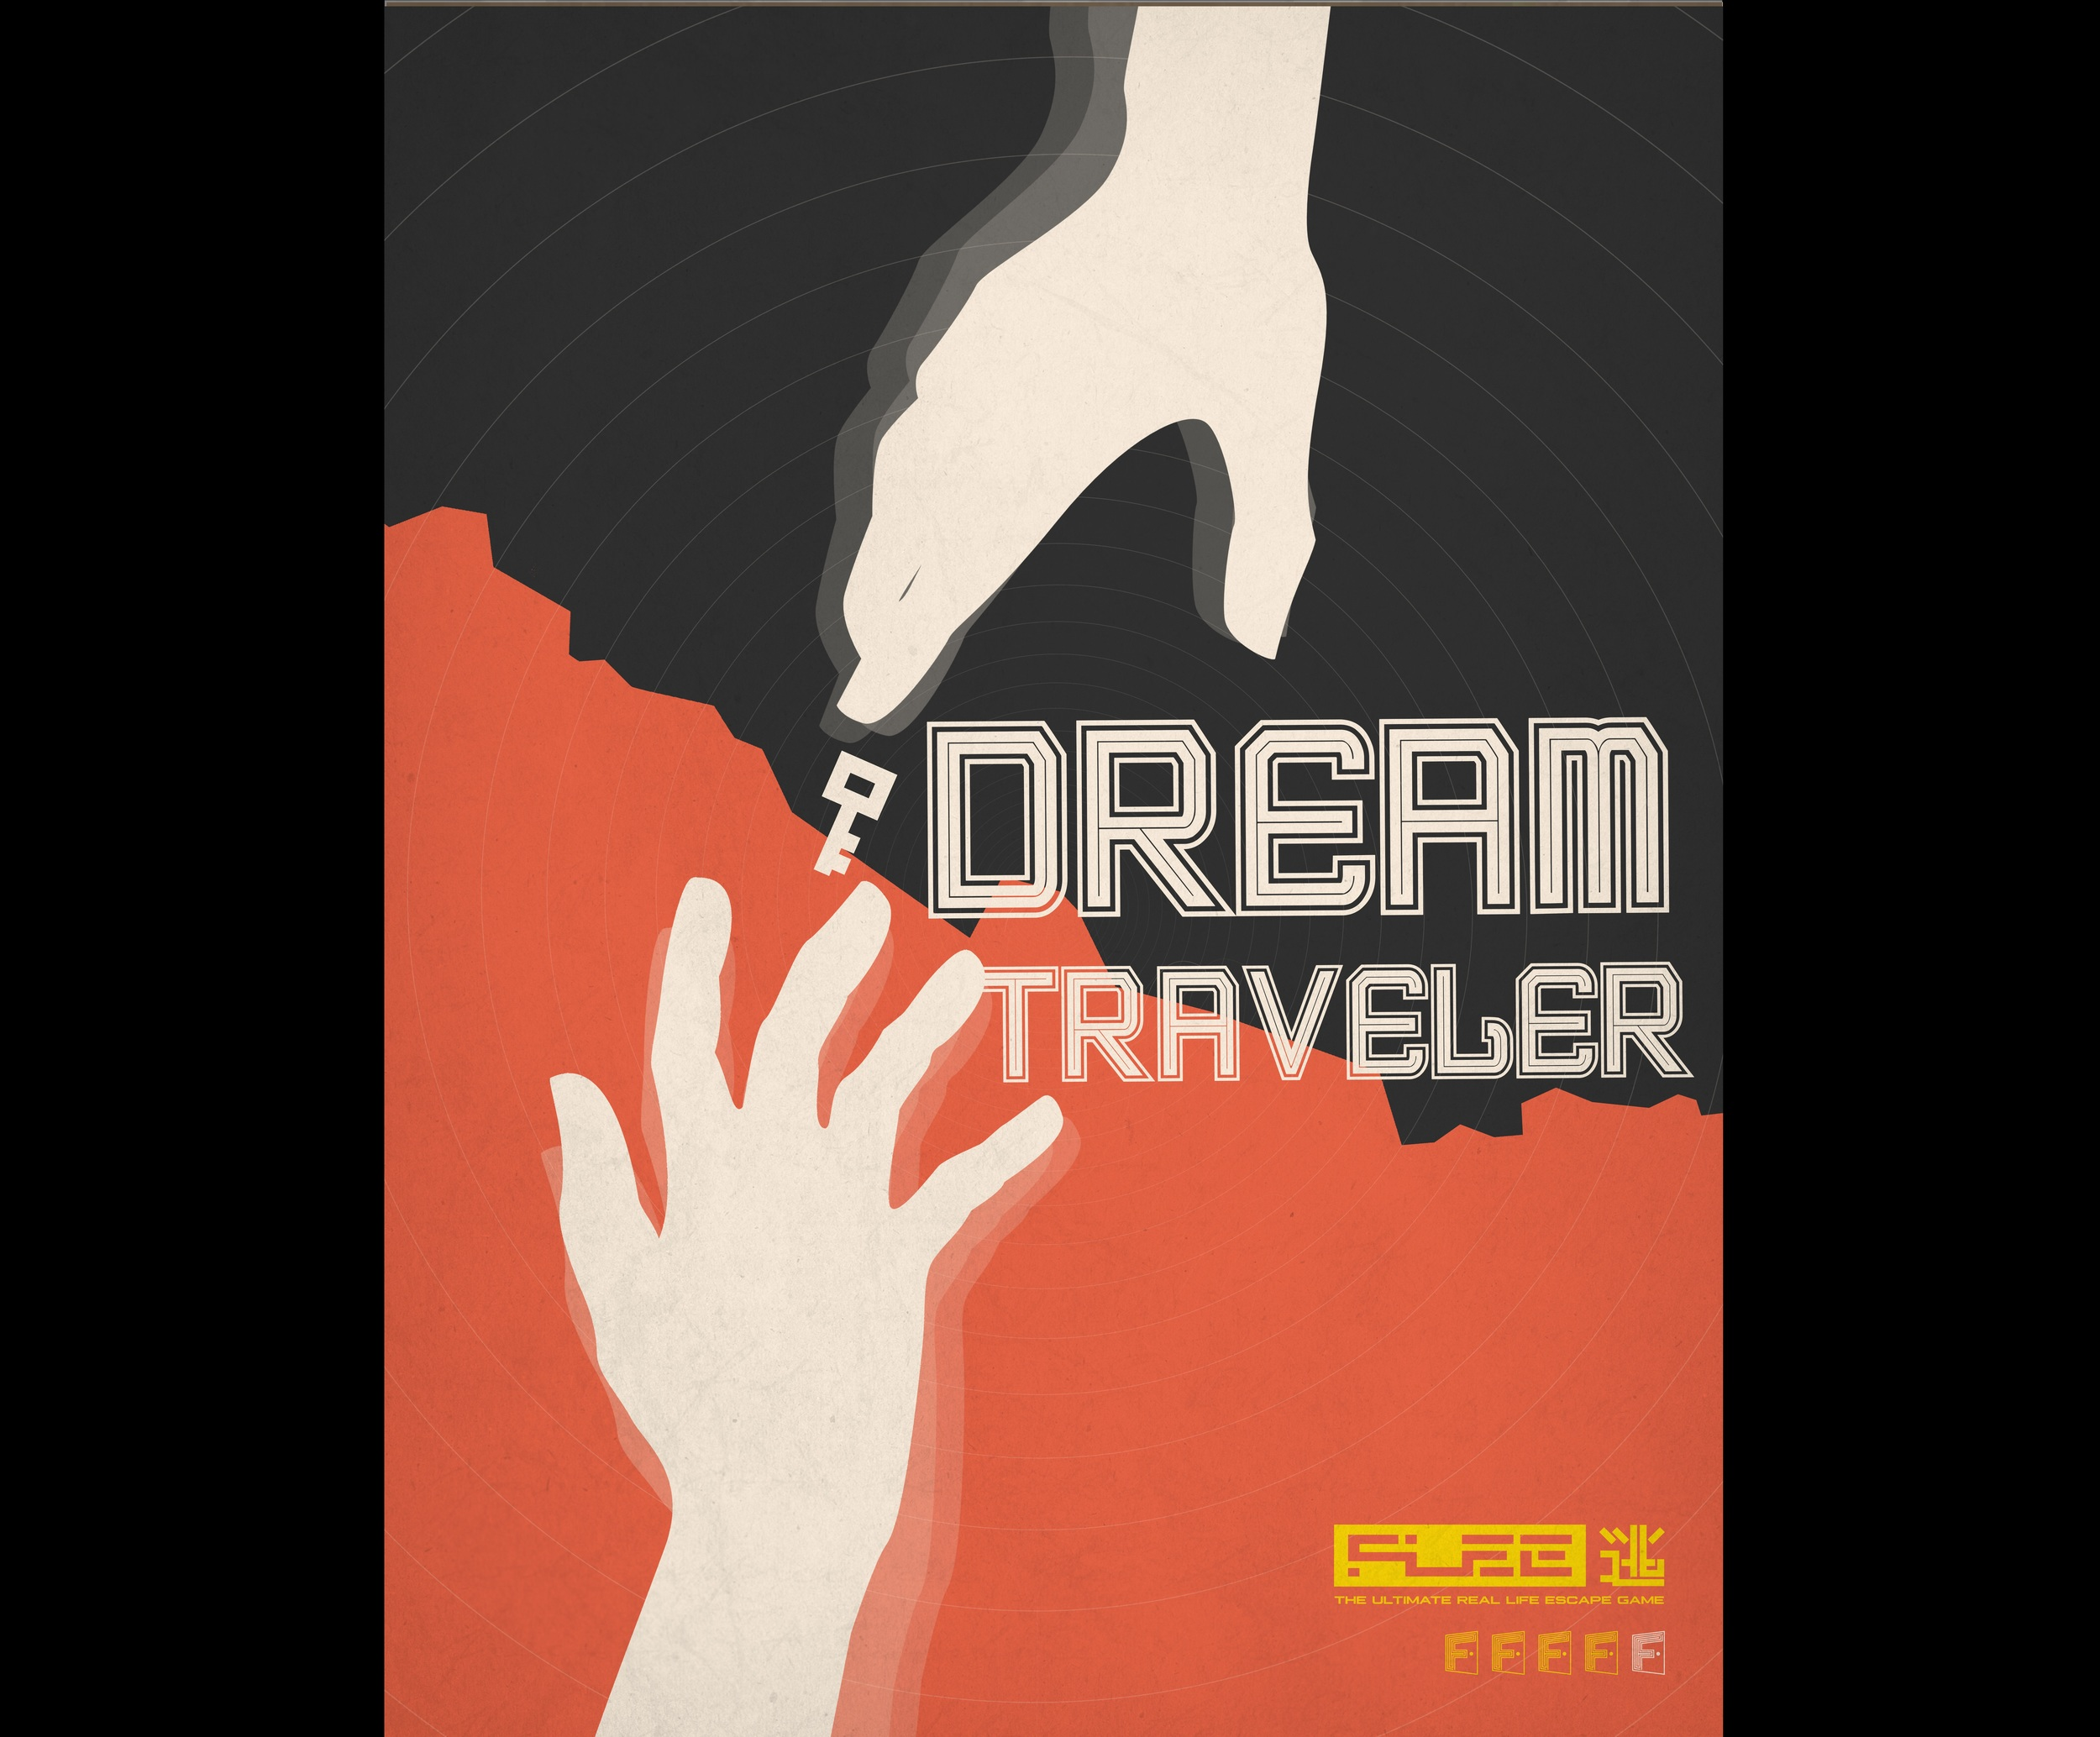 DREAM TRAVELER  Redmond. DREAM TRAVELER  Redmond    FLEE   Escape Room Seattle   Redmond